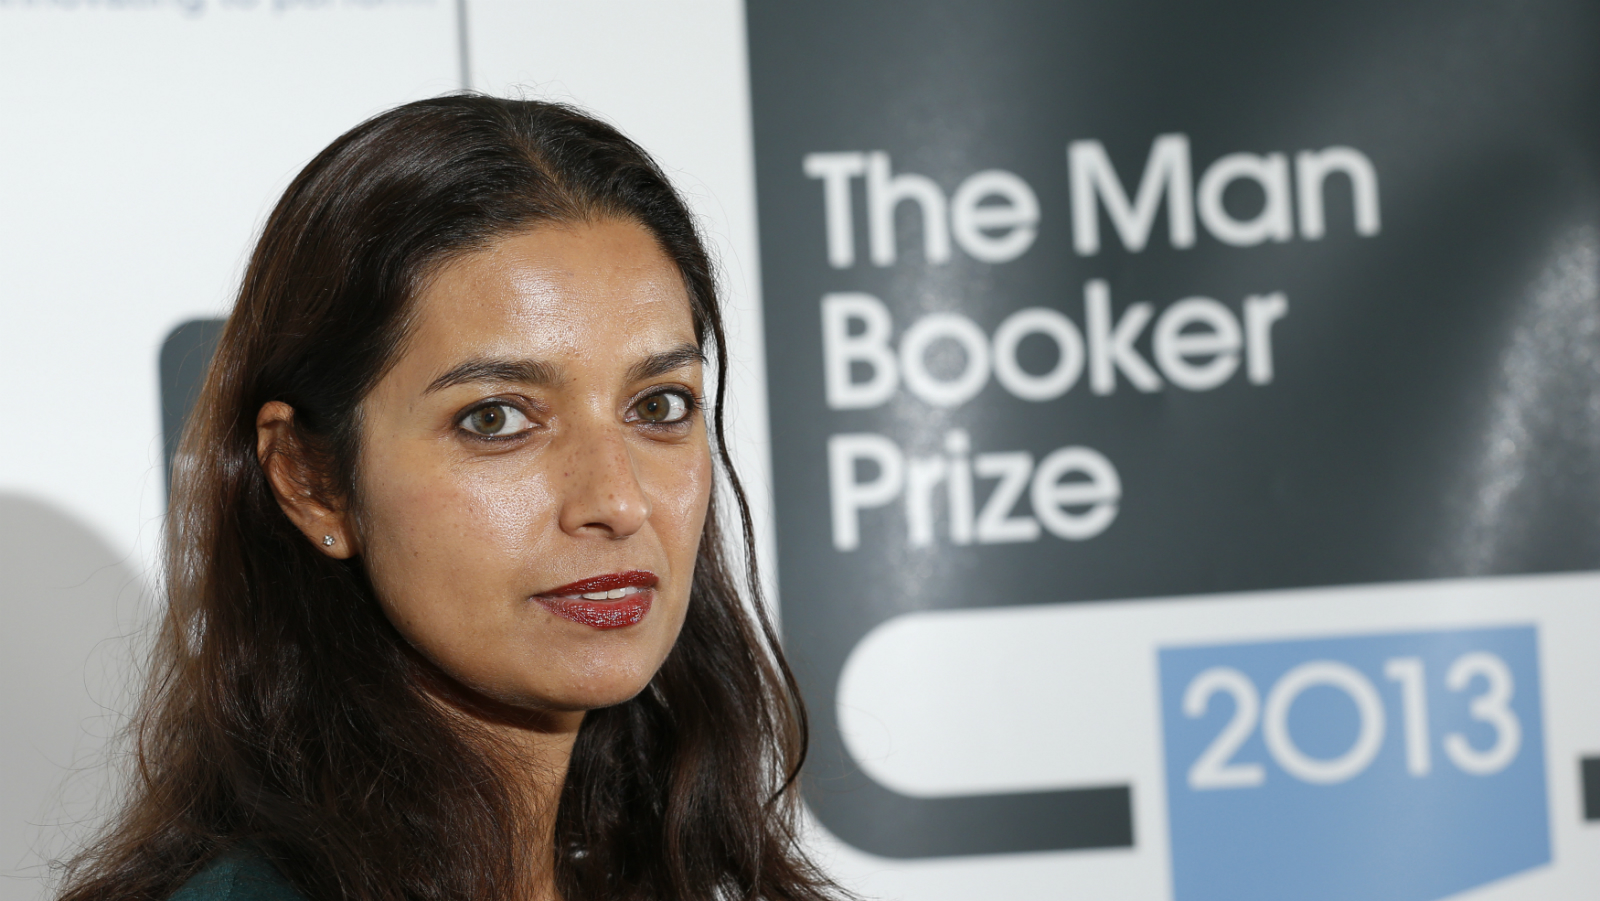 """Man Booker prize shortlist nominee Jhumpa Lahiri who wrote """"The Lowland"""", poses during a photocall at the Southbank Centre in London, October 13, 2013. REUTERS/Olivia Harris (BRITAIN - Tags: ENTERTAINMENT)"""